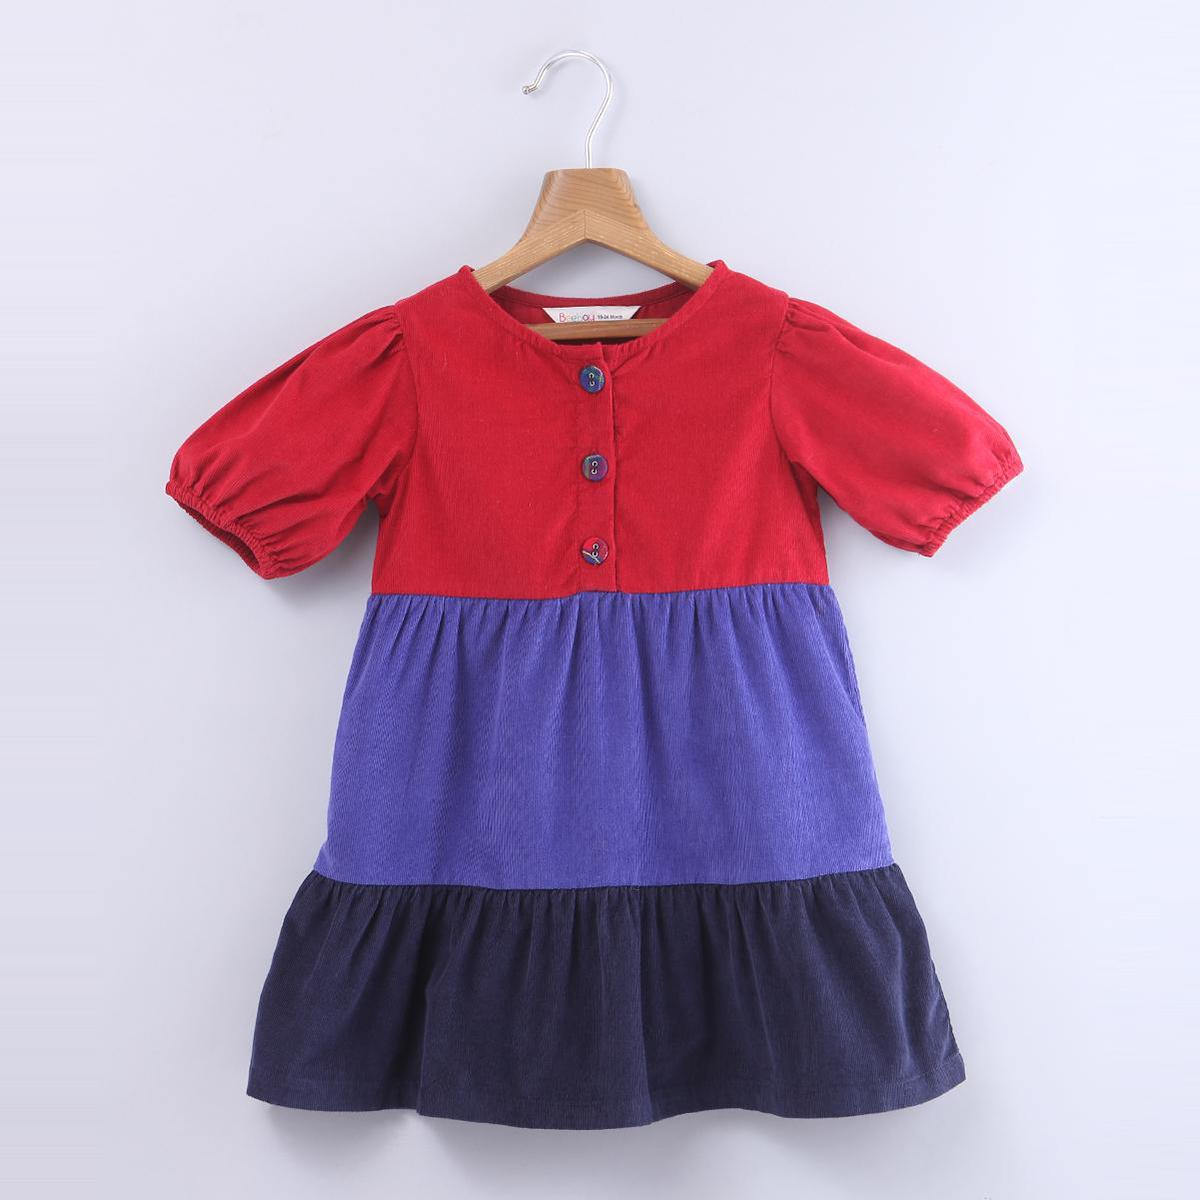 Beebay - Multi Colored Puff Sleeve Corduroy Tiered Cotton Dress For Kids Girls